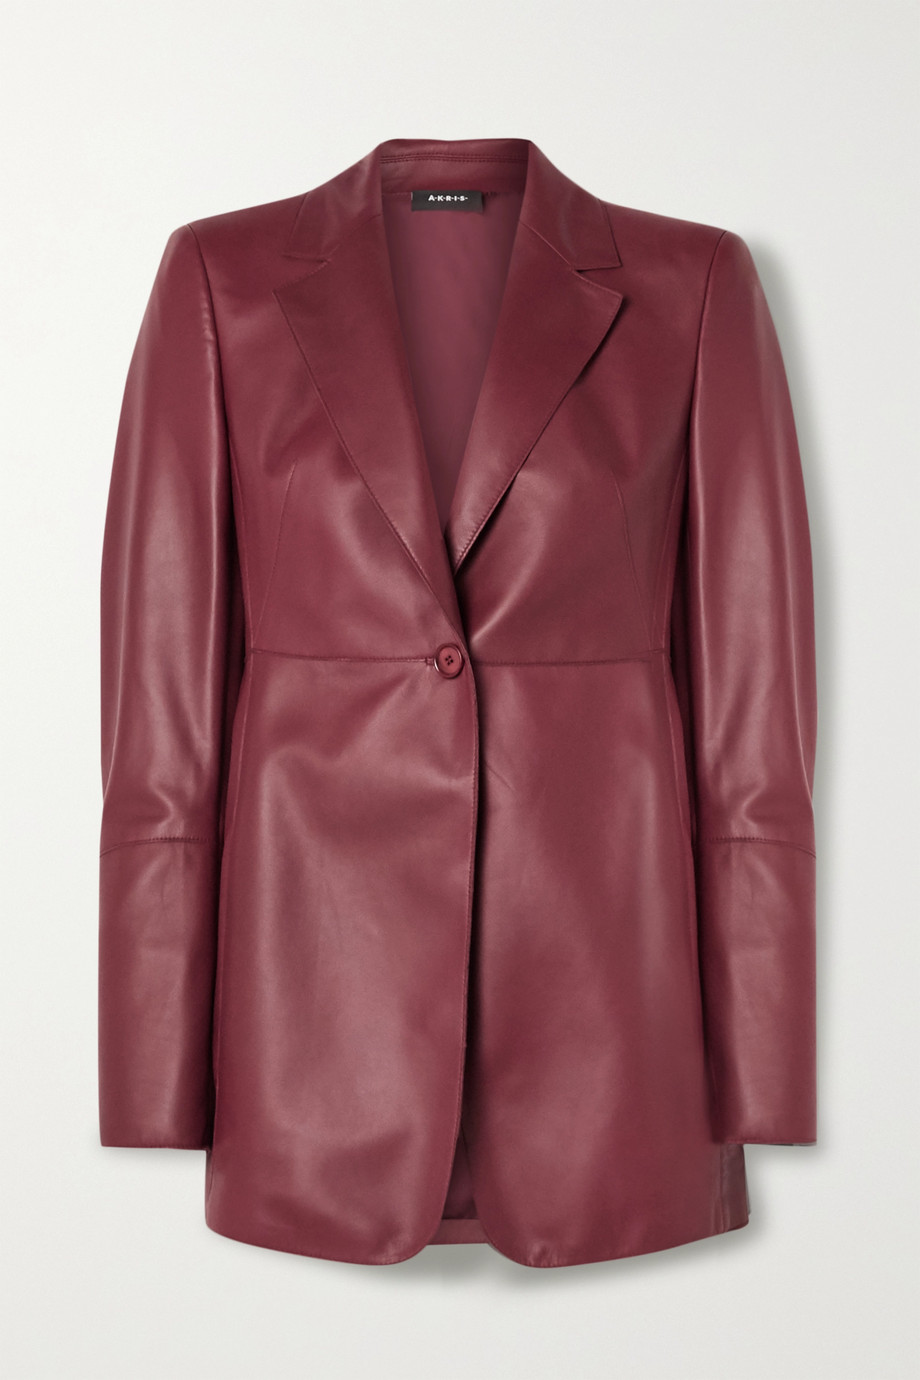 Akris Leather blazer